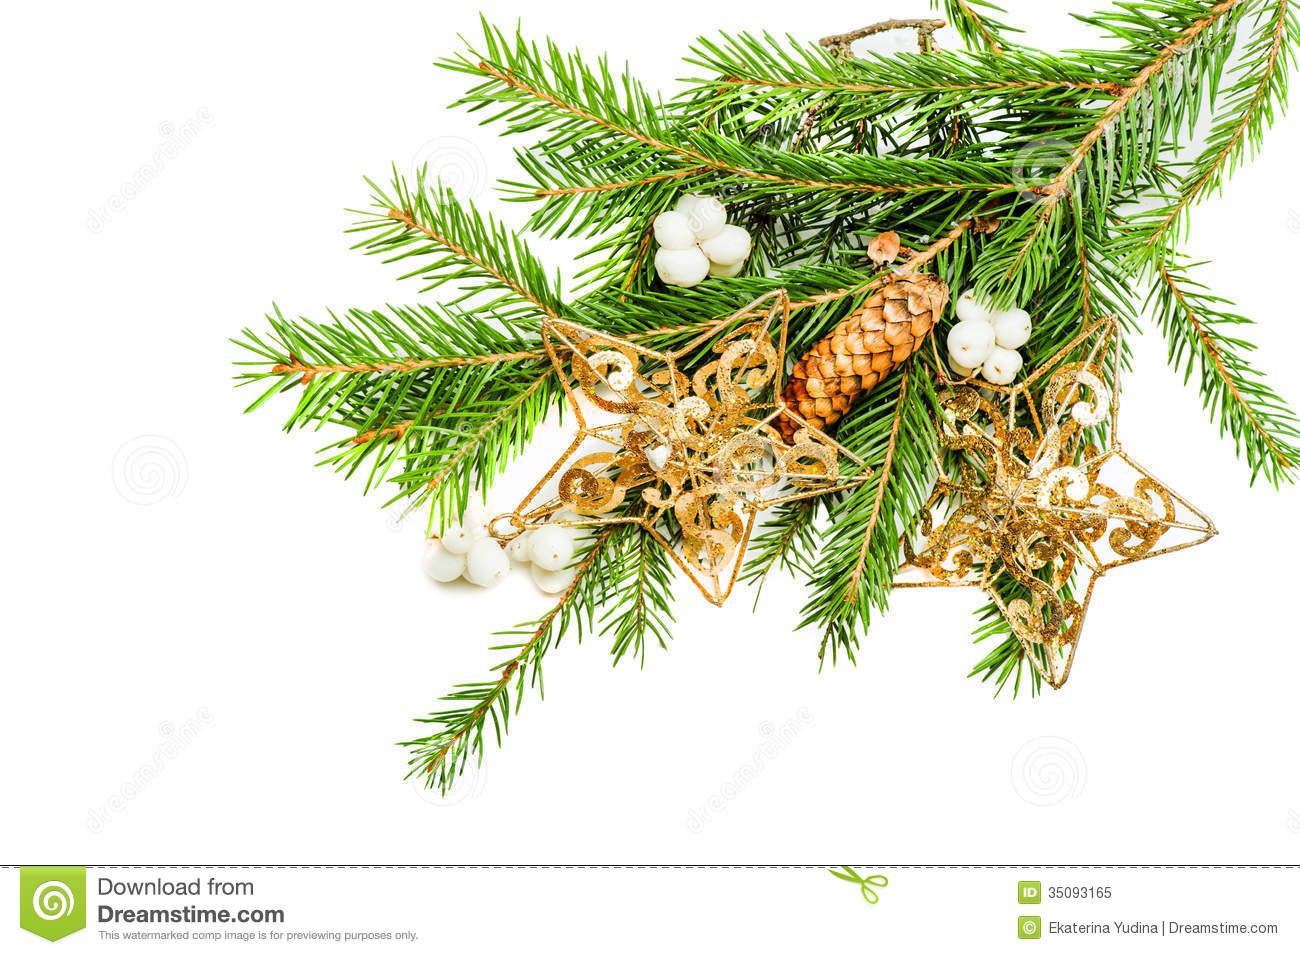 green christmas tree branch with decorations - Christmas Tree Branch Decorations